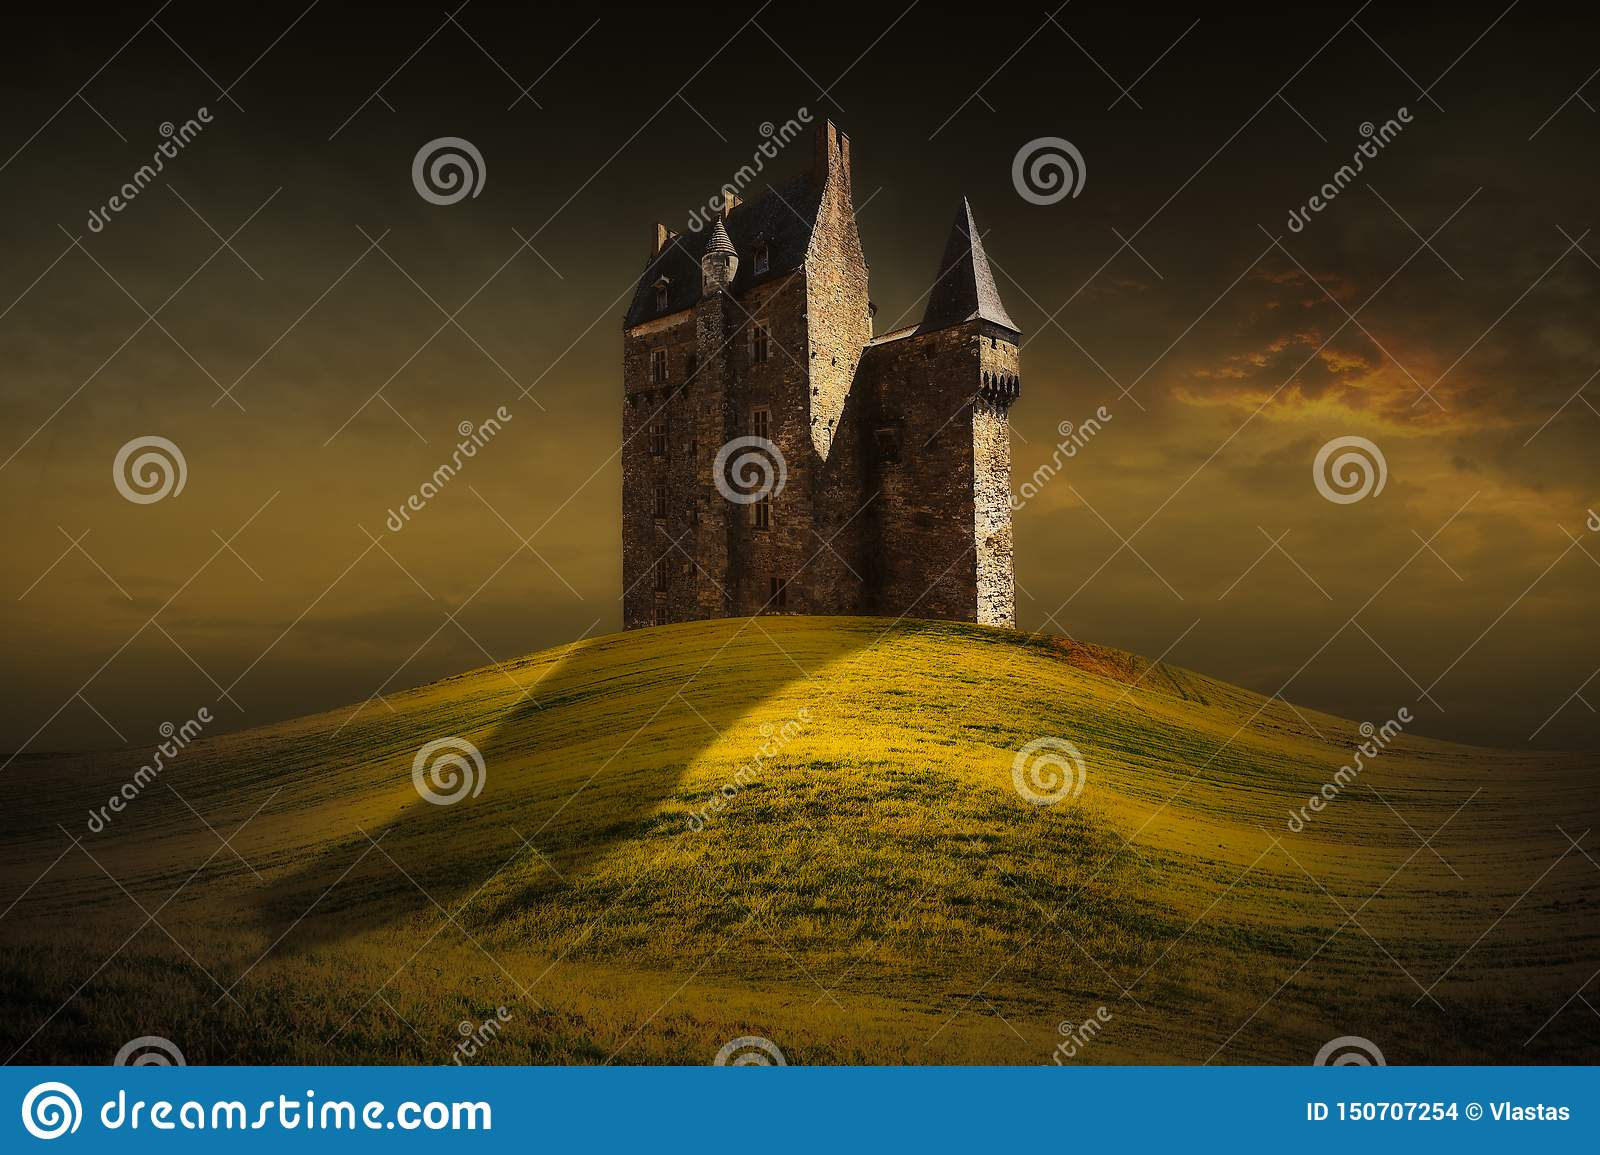 Fantasy castle behind the green grass hill